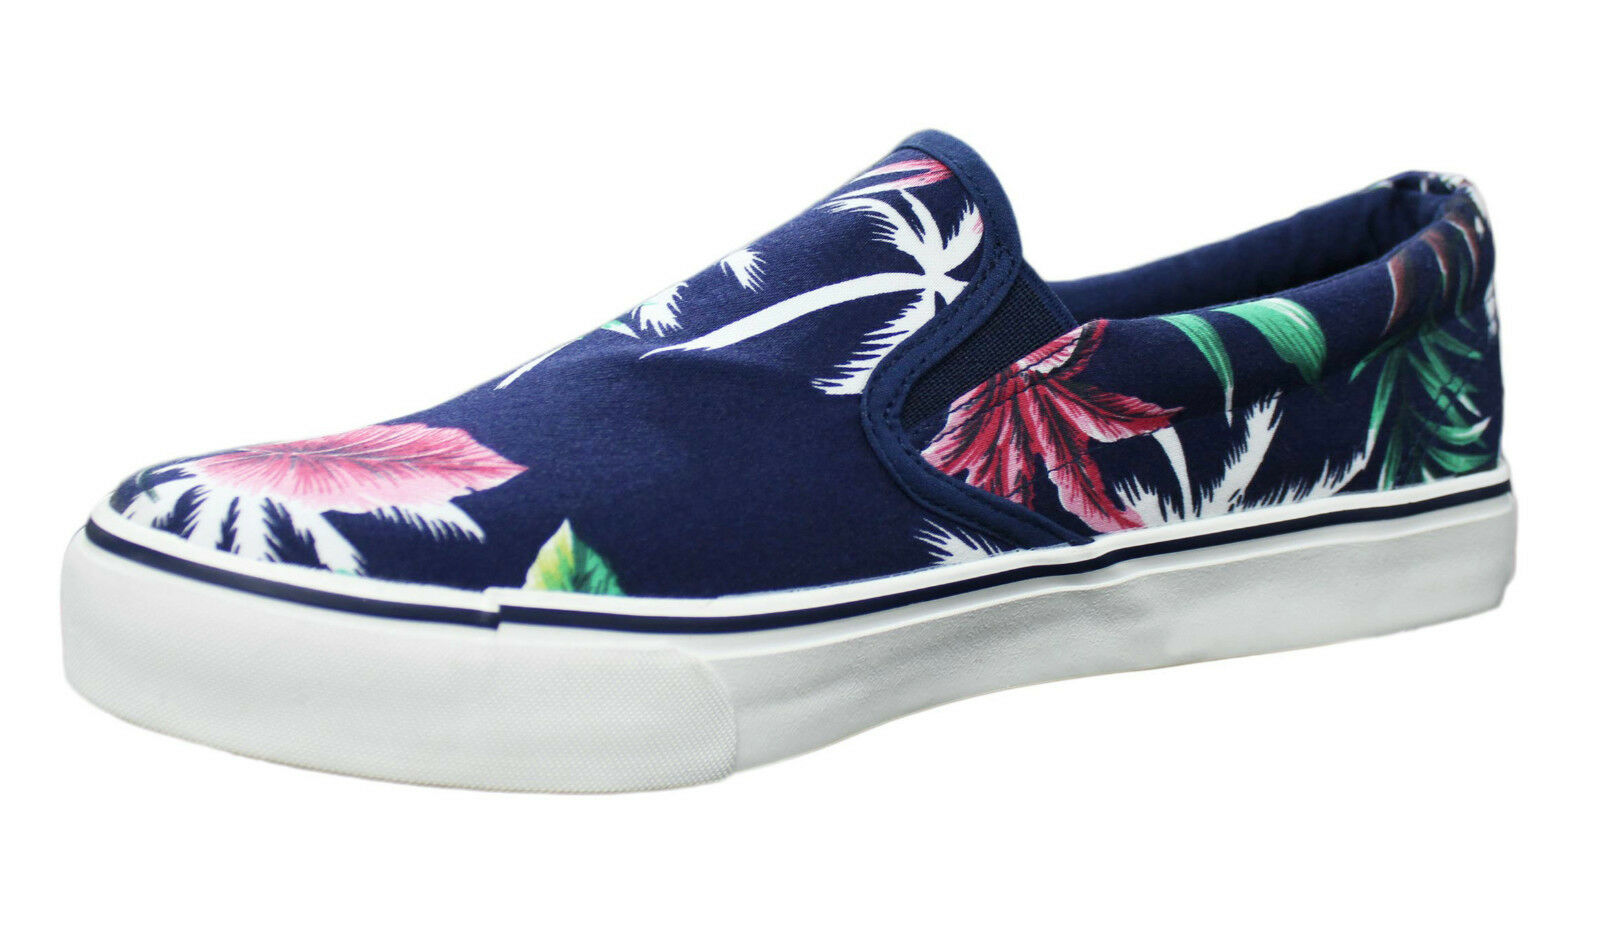 SNEAKERS SHOES MAN BLU FLORAL CASUAL SHOES a LOAFERS FIORE da 40 a SHOES 45 0527c8